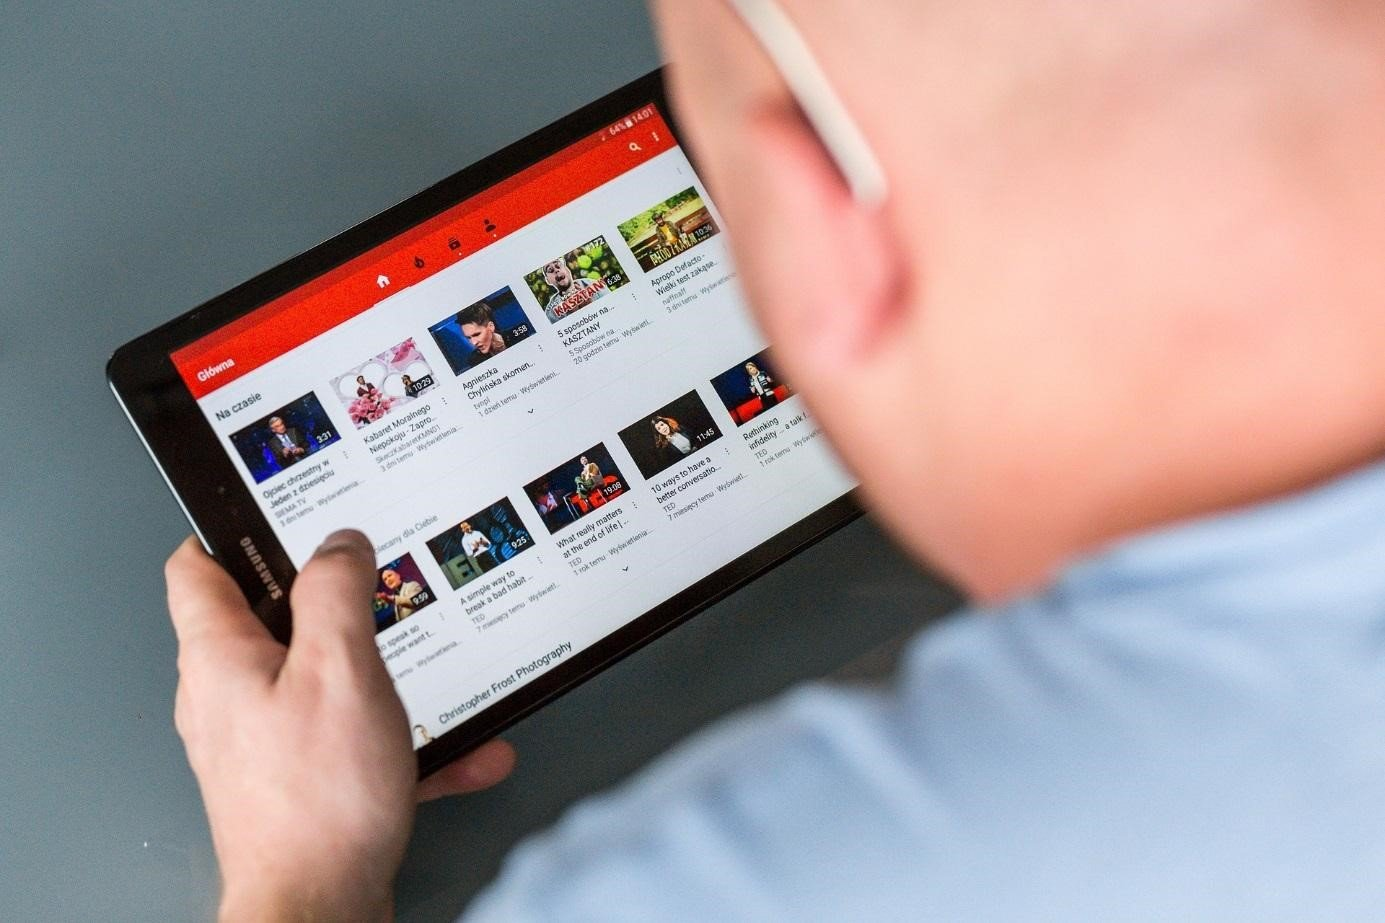 Blick auf Tablet mit YouTube-Screen